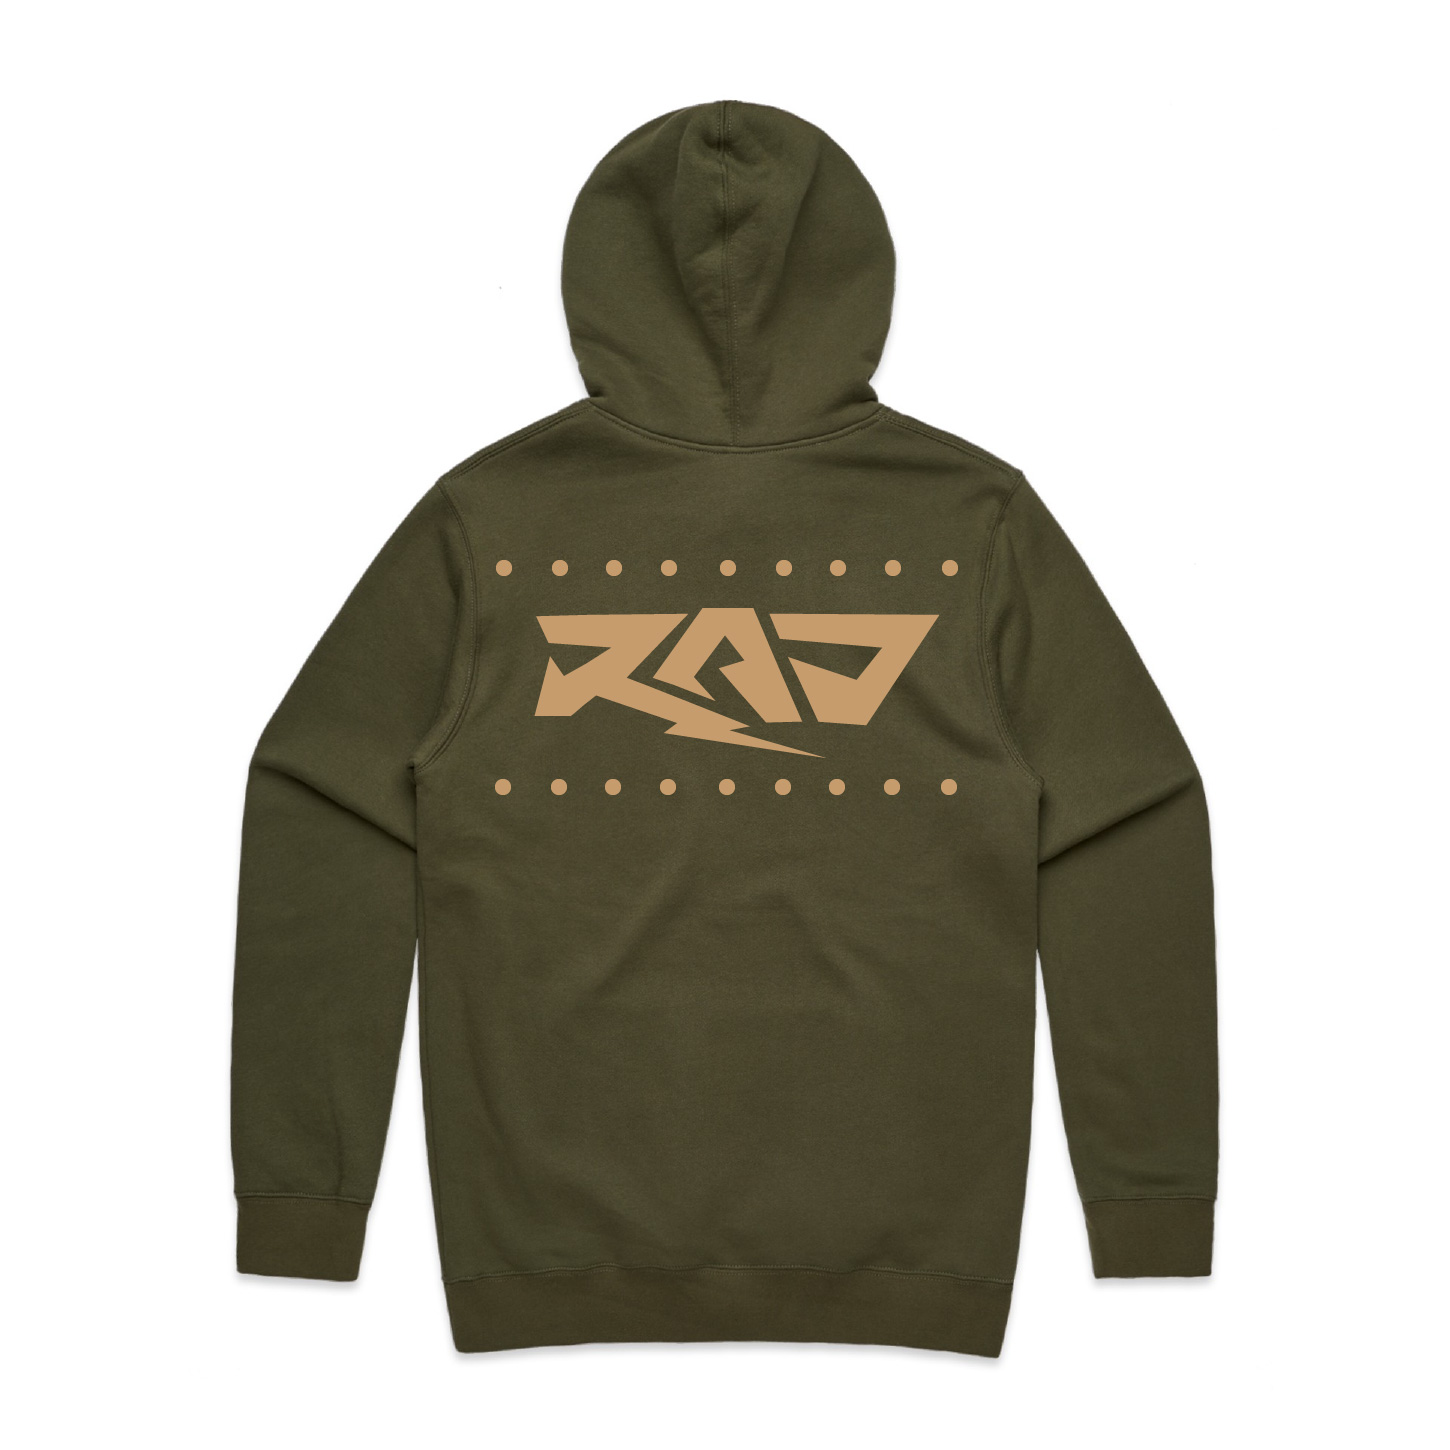 FRESH IS GOOD RIGHT - Always putting it out front & letting the creative vibes flow, the RAD Design Team found some serious groove with the Totally Stud hoodie.